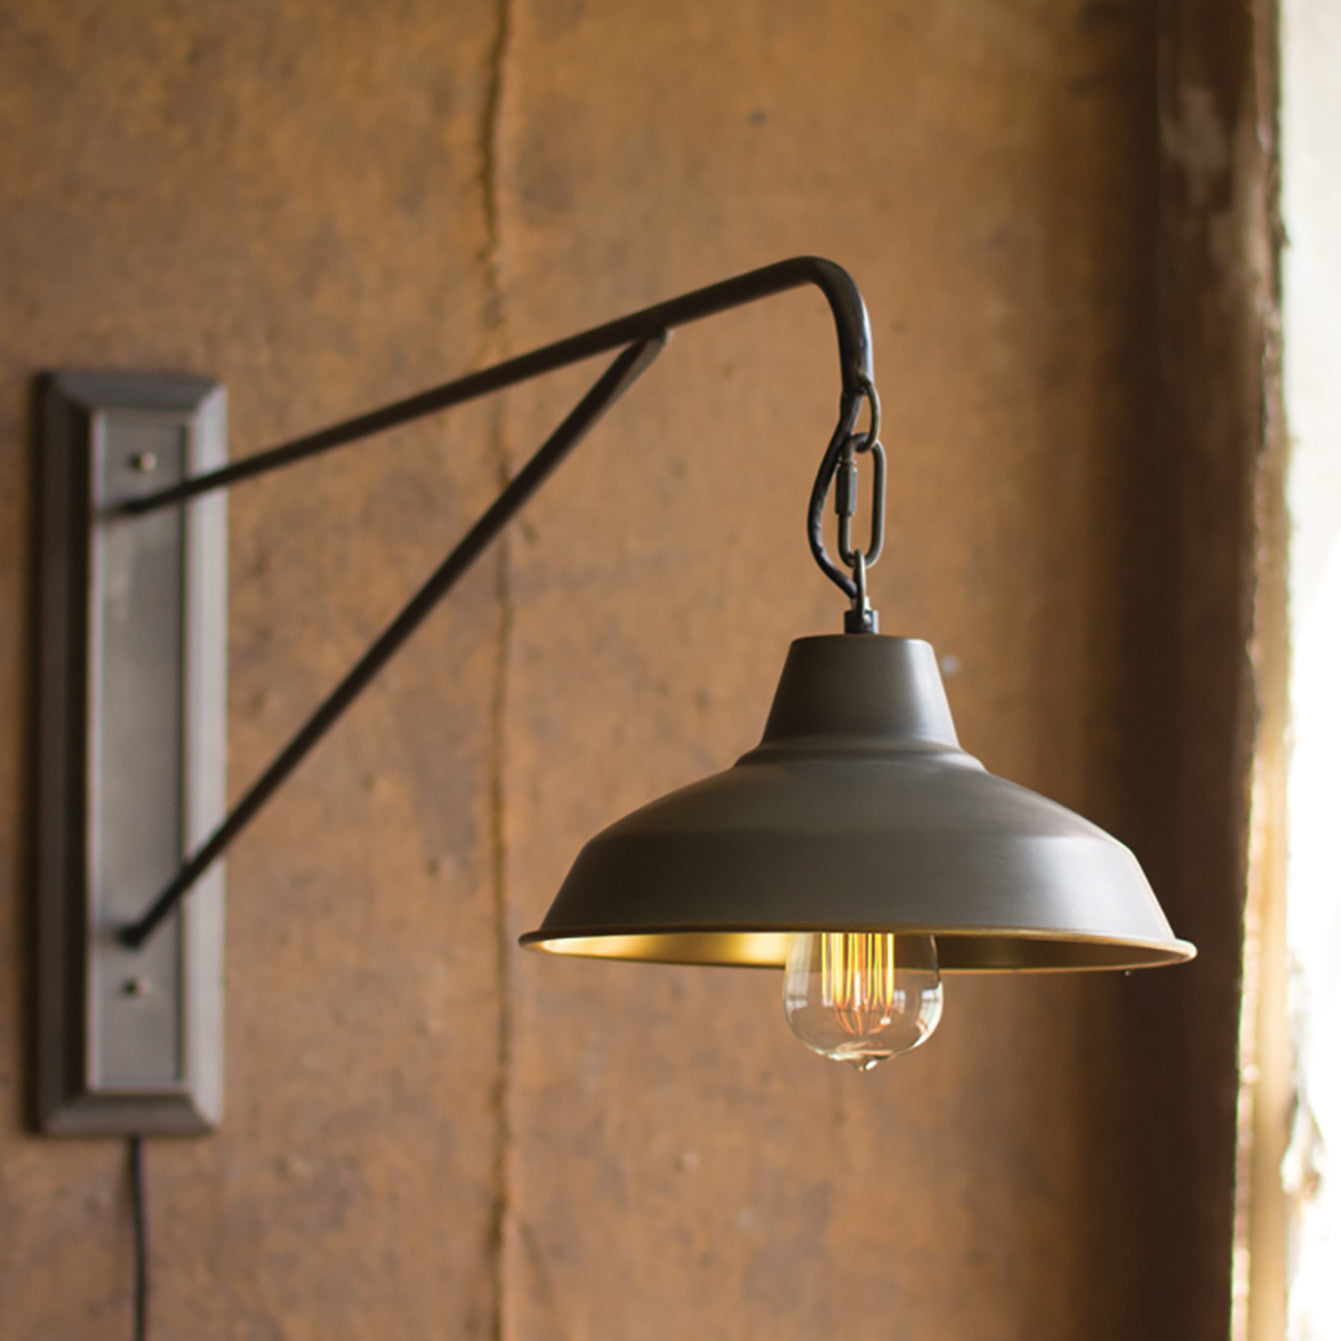 Farmhouse industrial modern plug in wall sconce woodwaves farmhouse industrial modern plug in wall sconce mozeypictures Image collections